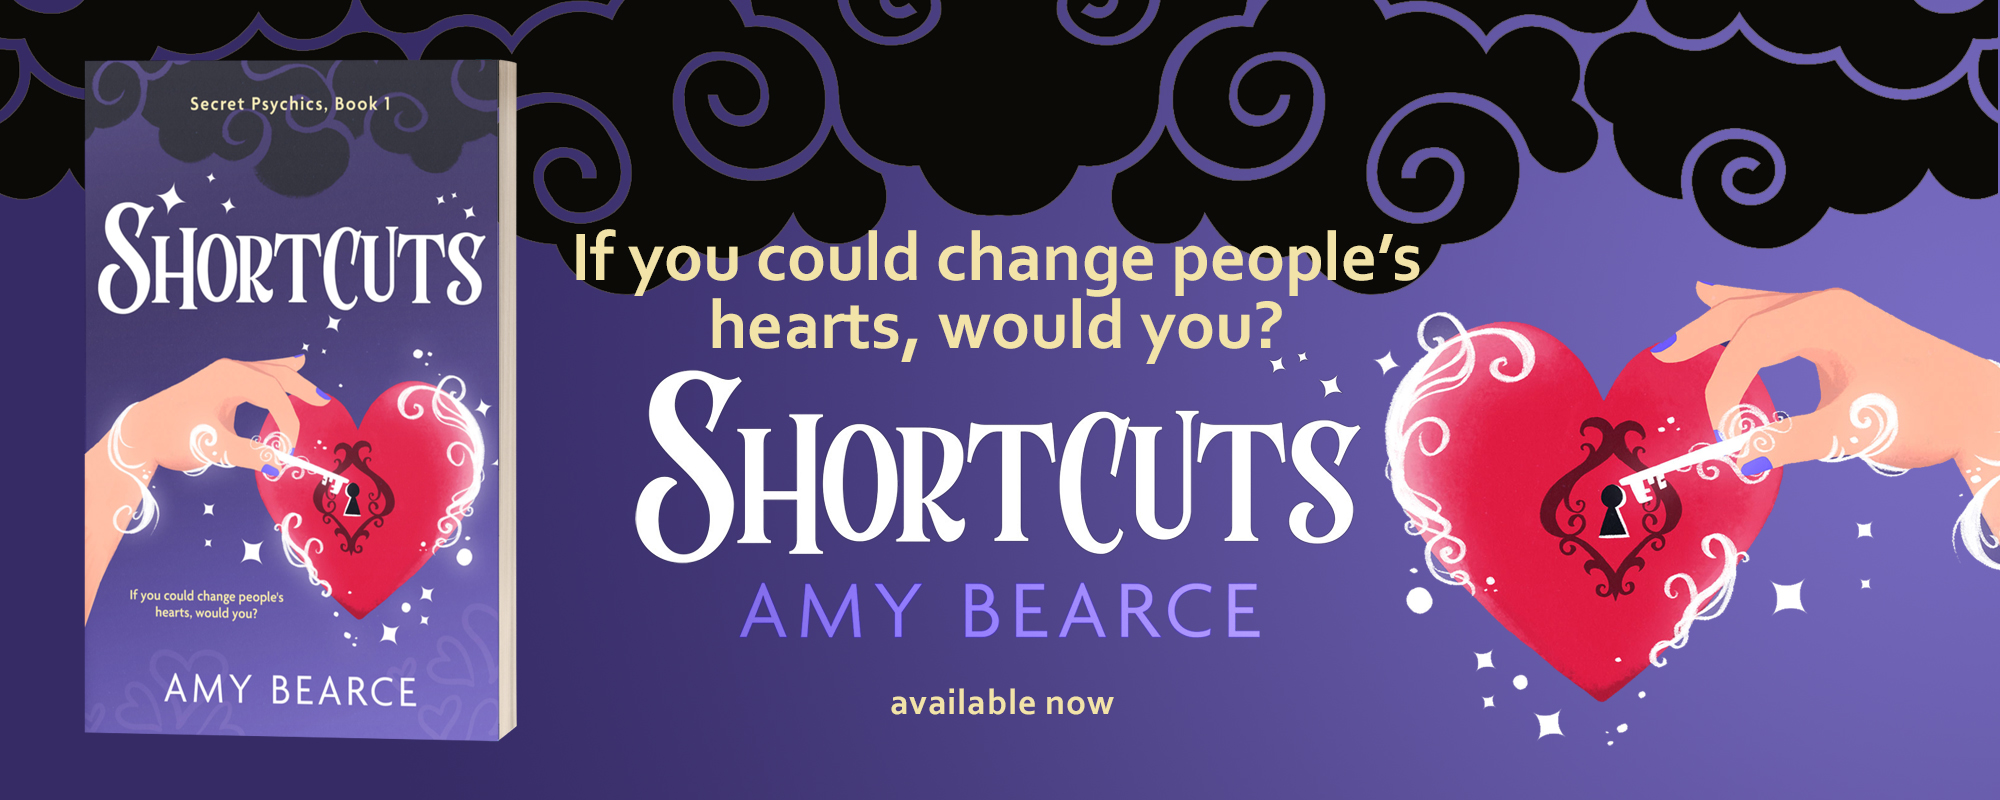 Shortcuts by Amy Bearce, available now